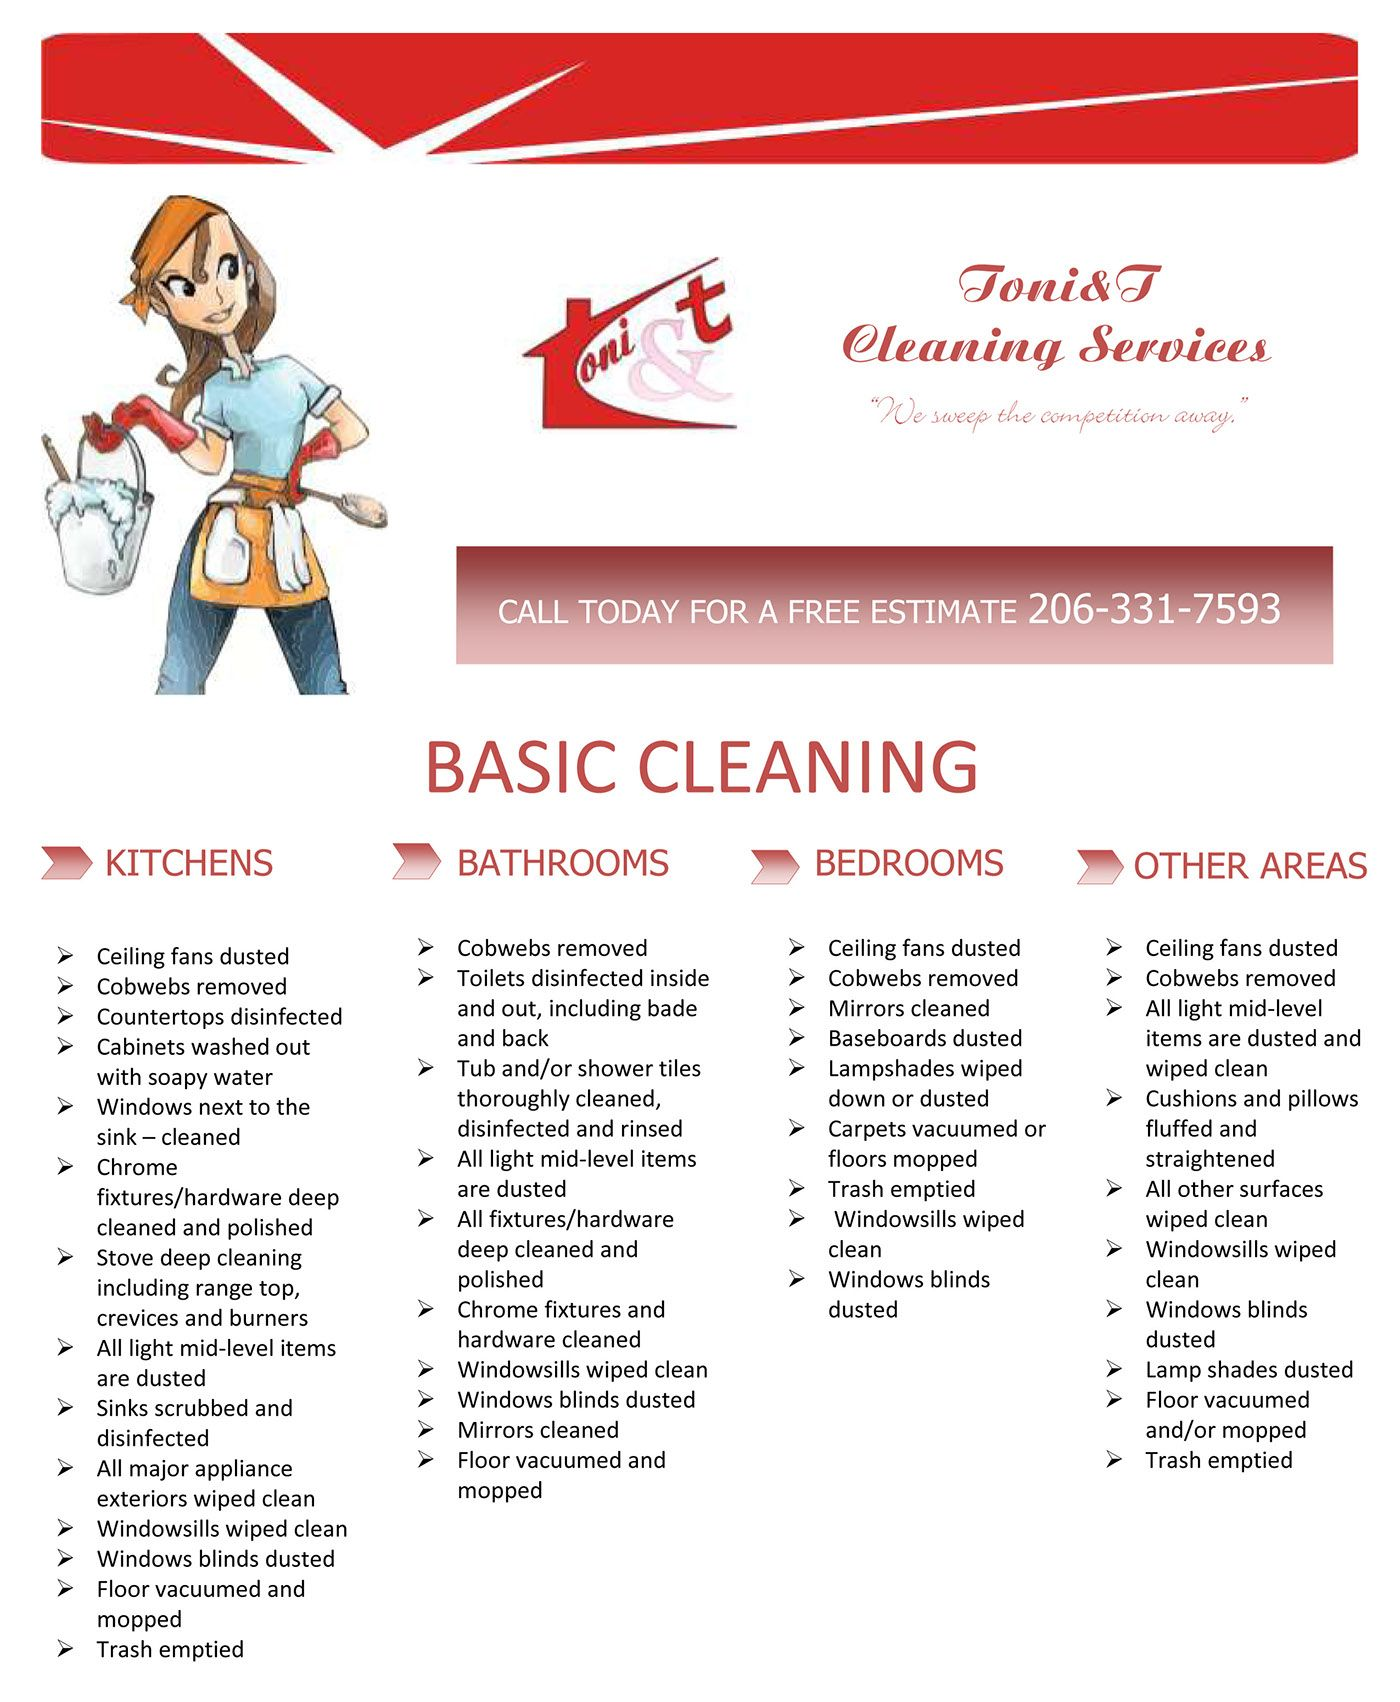 Create A Flyer For A Cleaning Services Companny  Projects To Try